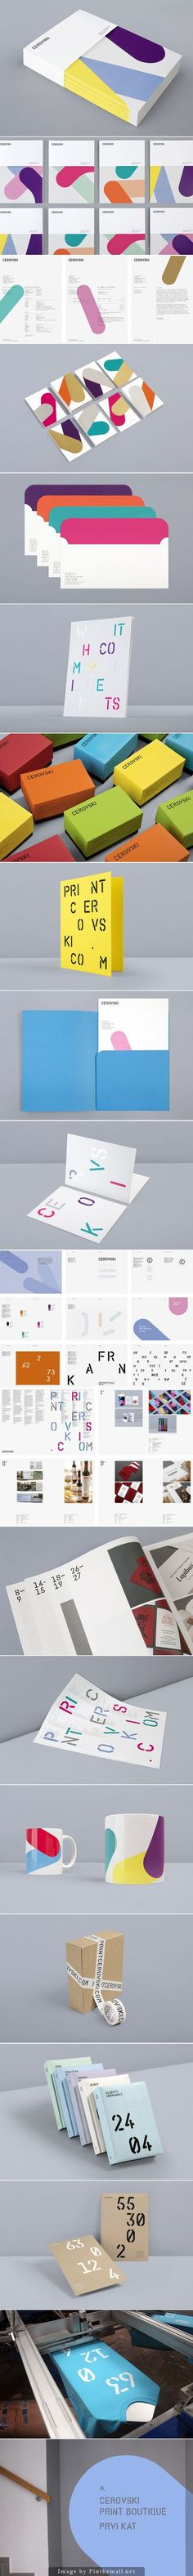 (17) Cerovsky Print Boutique Identity by Bunch | {packaging} | Pinterest / Branding / Ideas / Inspiration / Brand / Design / Print / Agency / Graphic / Bold / Complementary / Colors / Modern / Colorful